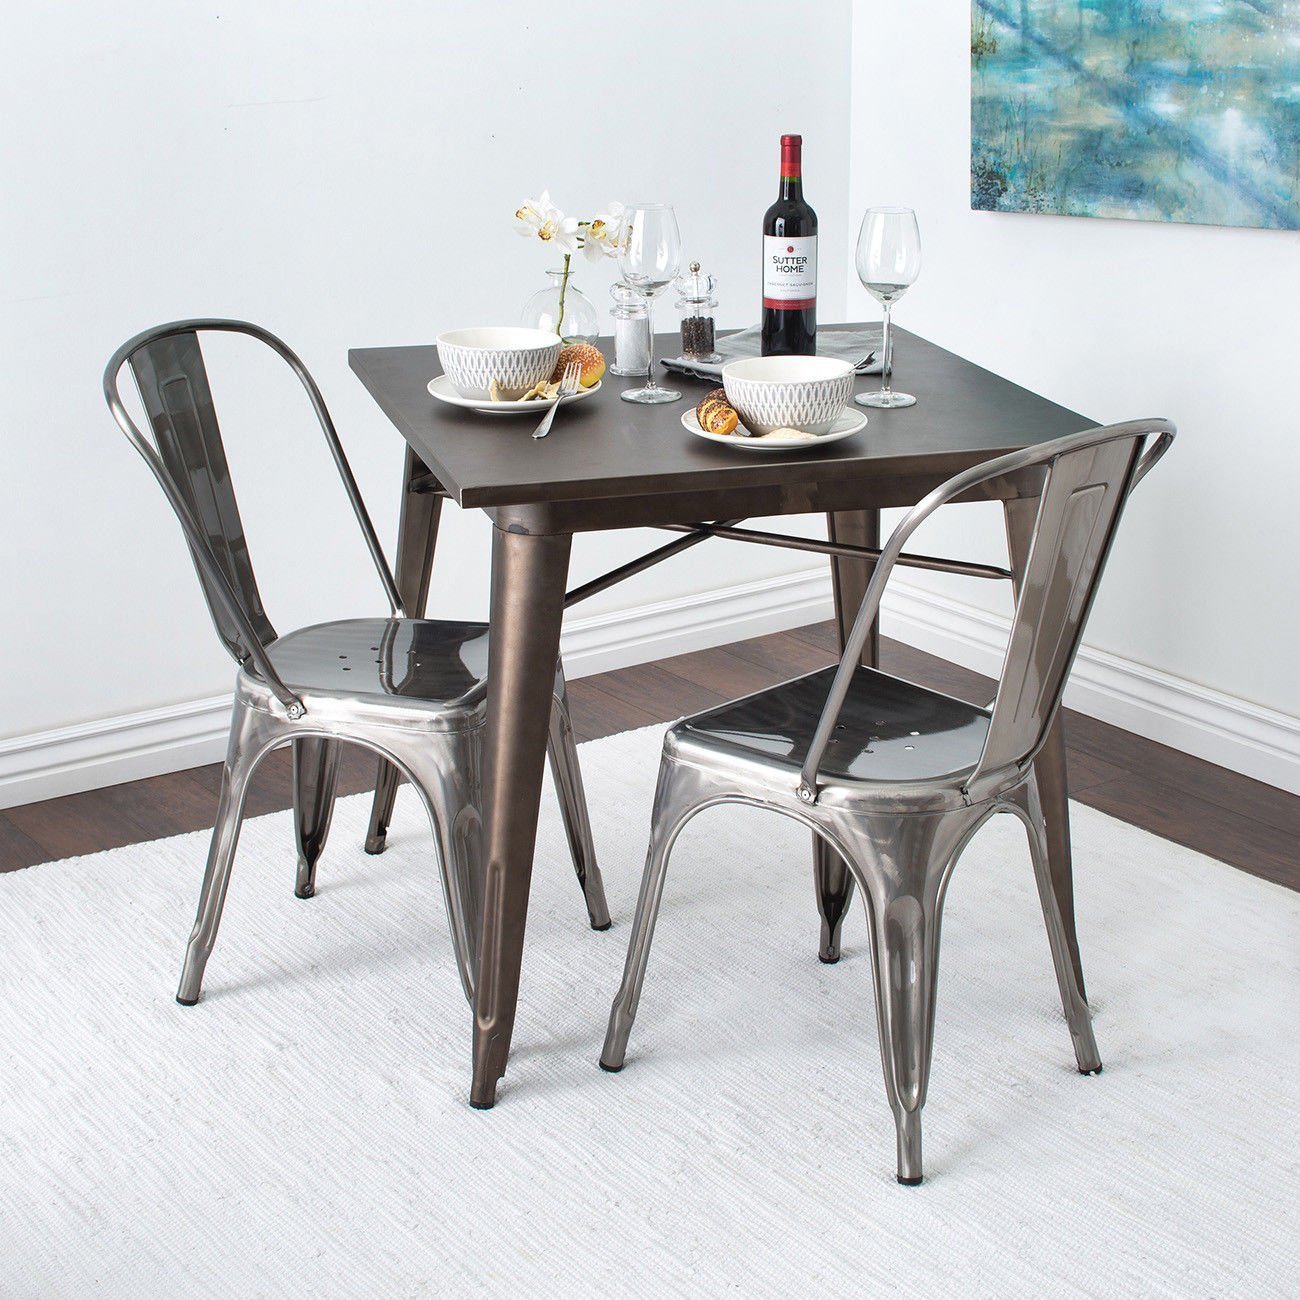 GHP 4-Pcs 330-Lbs Capacity Gunmetal Steel Antique Bistro Dining Chairs with Backrest